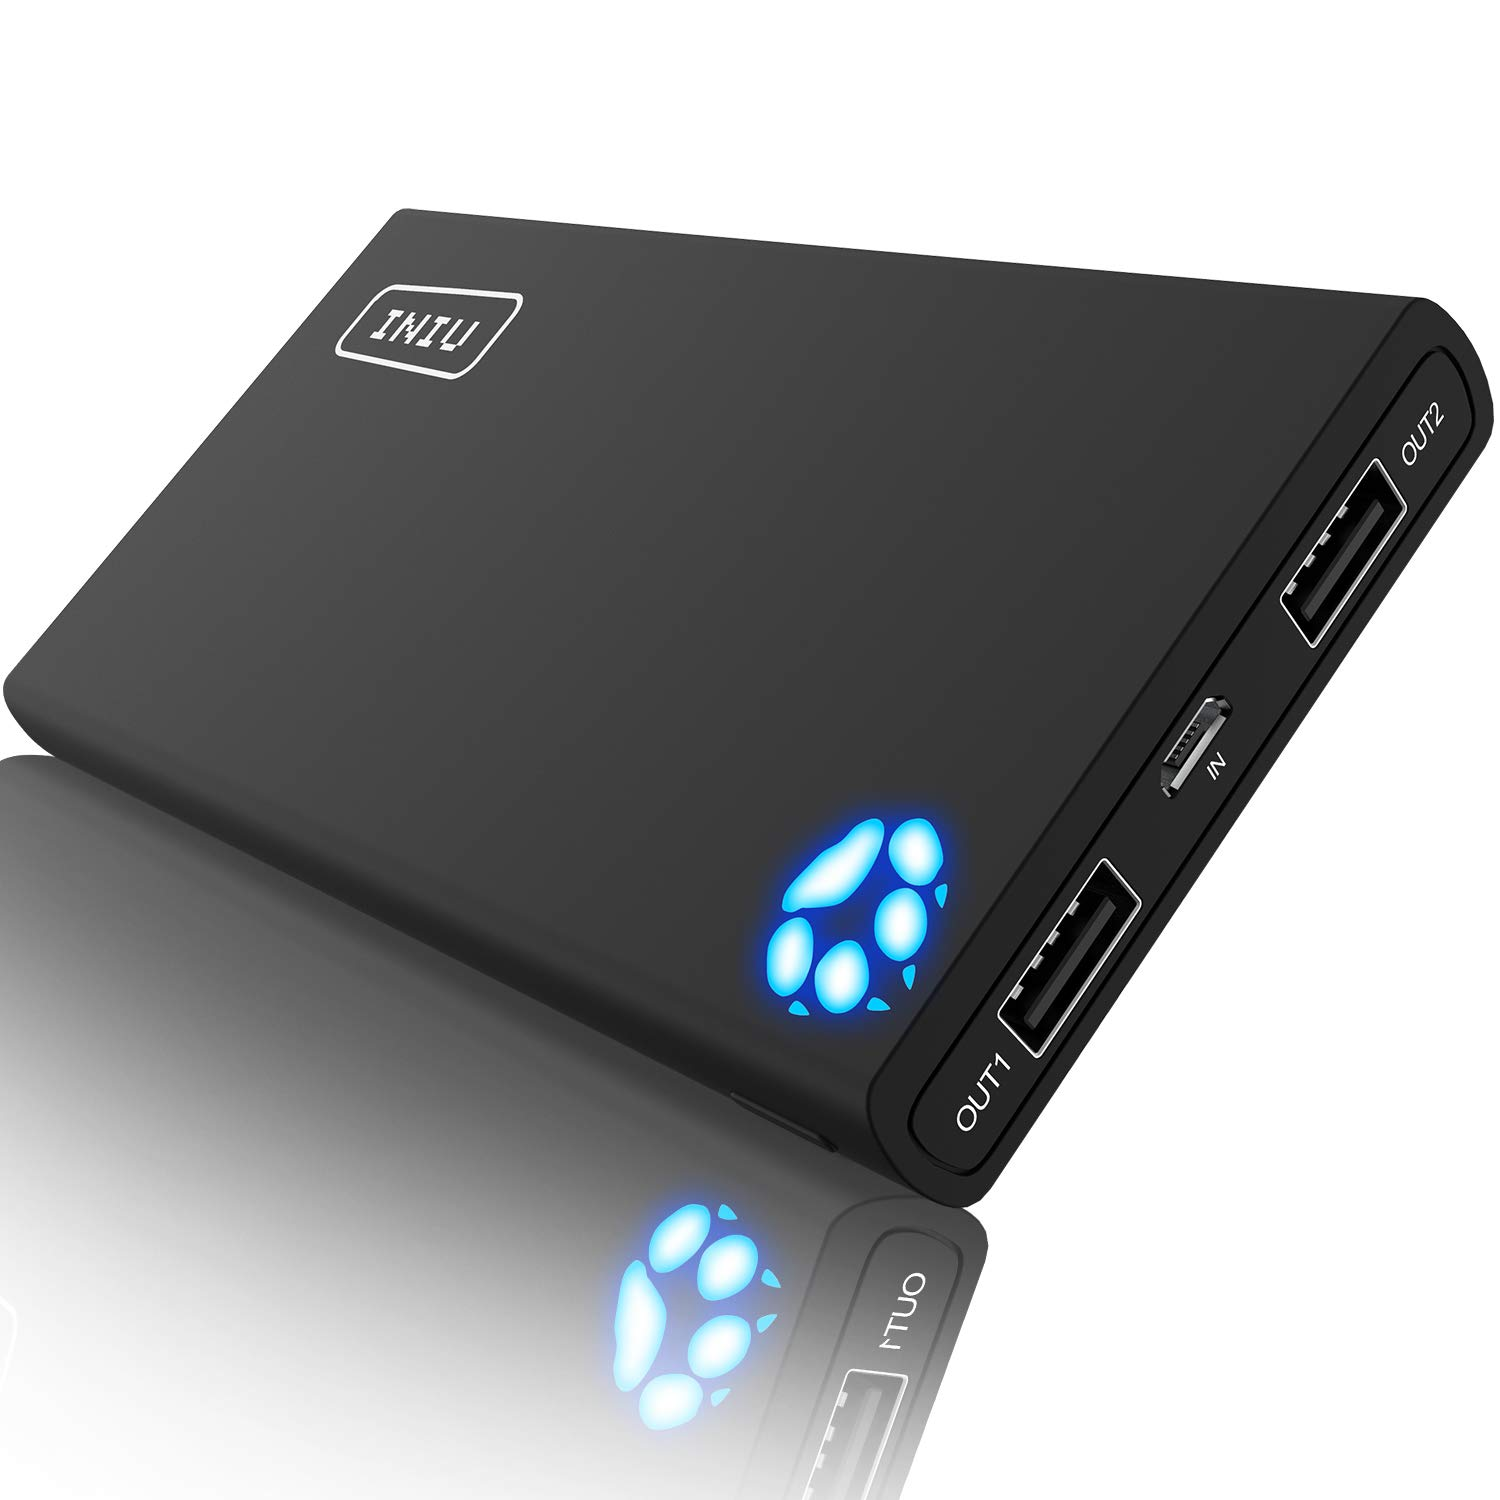 INIU 10000 mAh Tragbare schnelle Ladegerät Power Bank 2 USB Ports mit Taschenlampe Ultra Compact Slim Batterie Pack